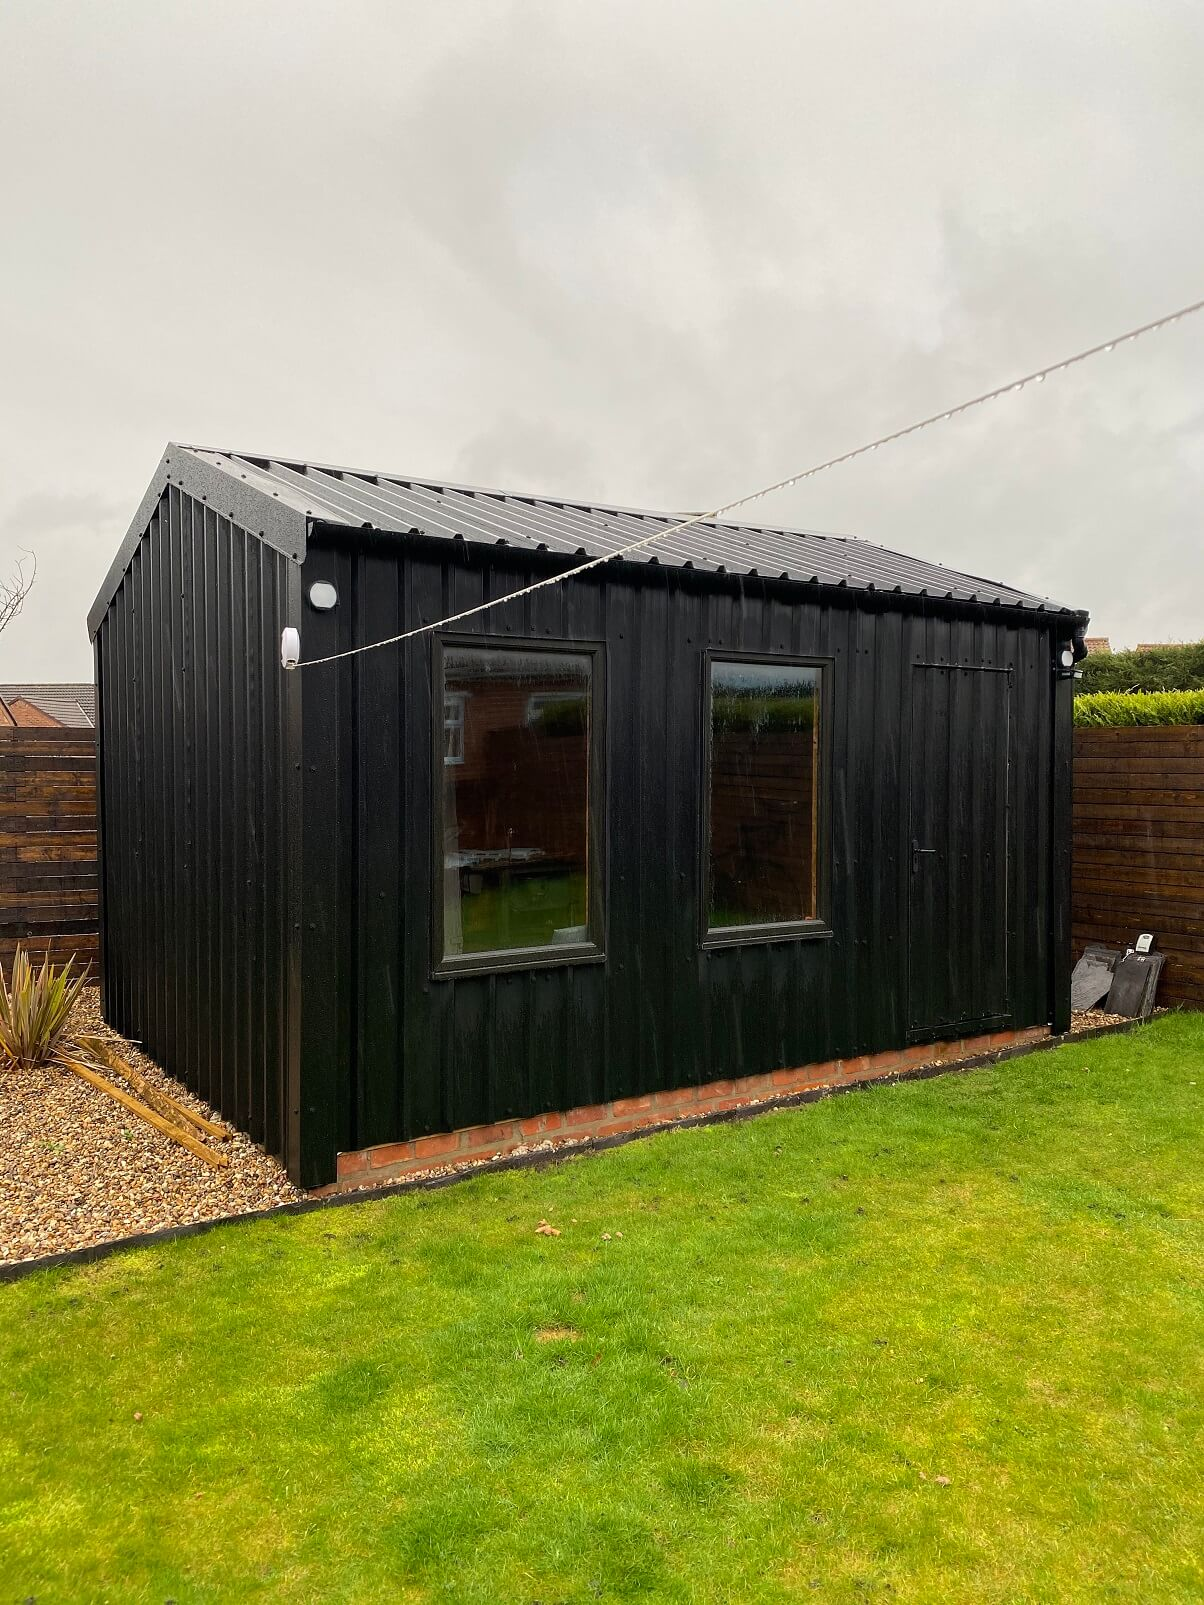 Ideal for any style of roof, barns, homes and garden sheds